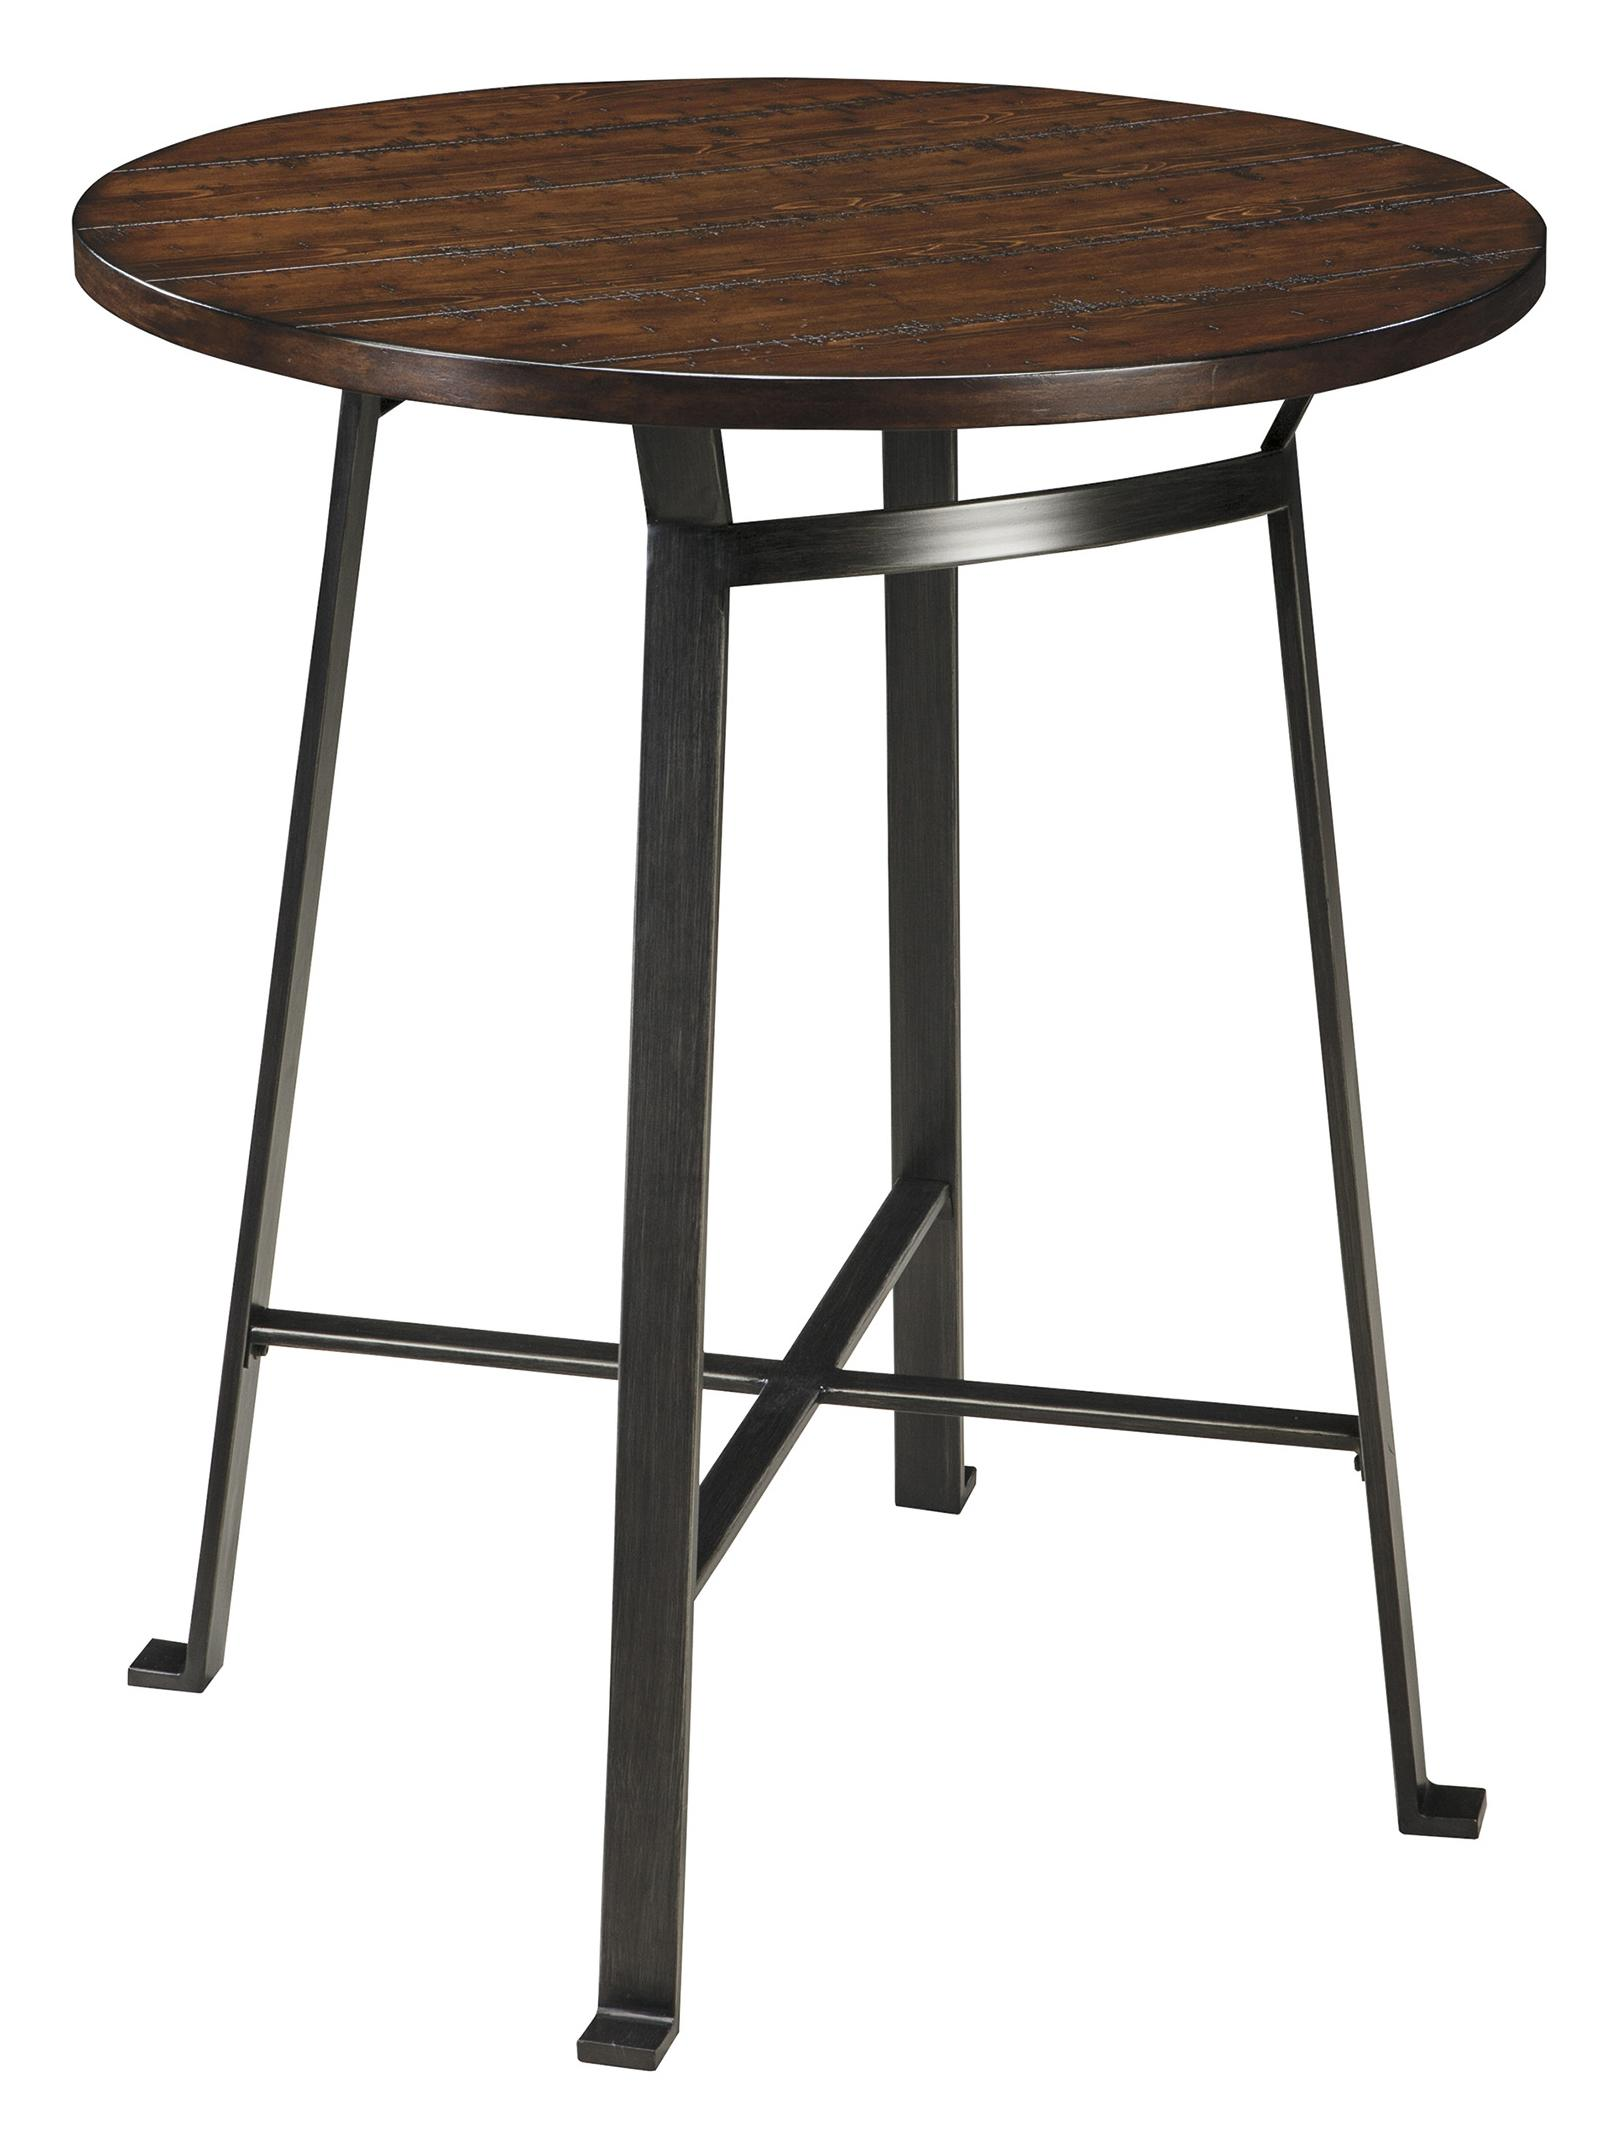 ashley signature design challiman d307 12 industrial style round dining room bar table dunk. Black Bedroom Furniture Sets. Home Design Ideas